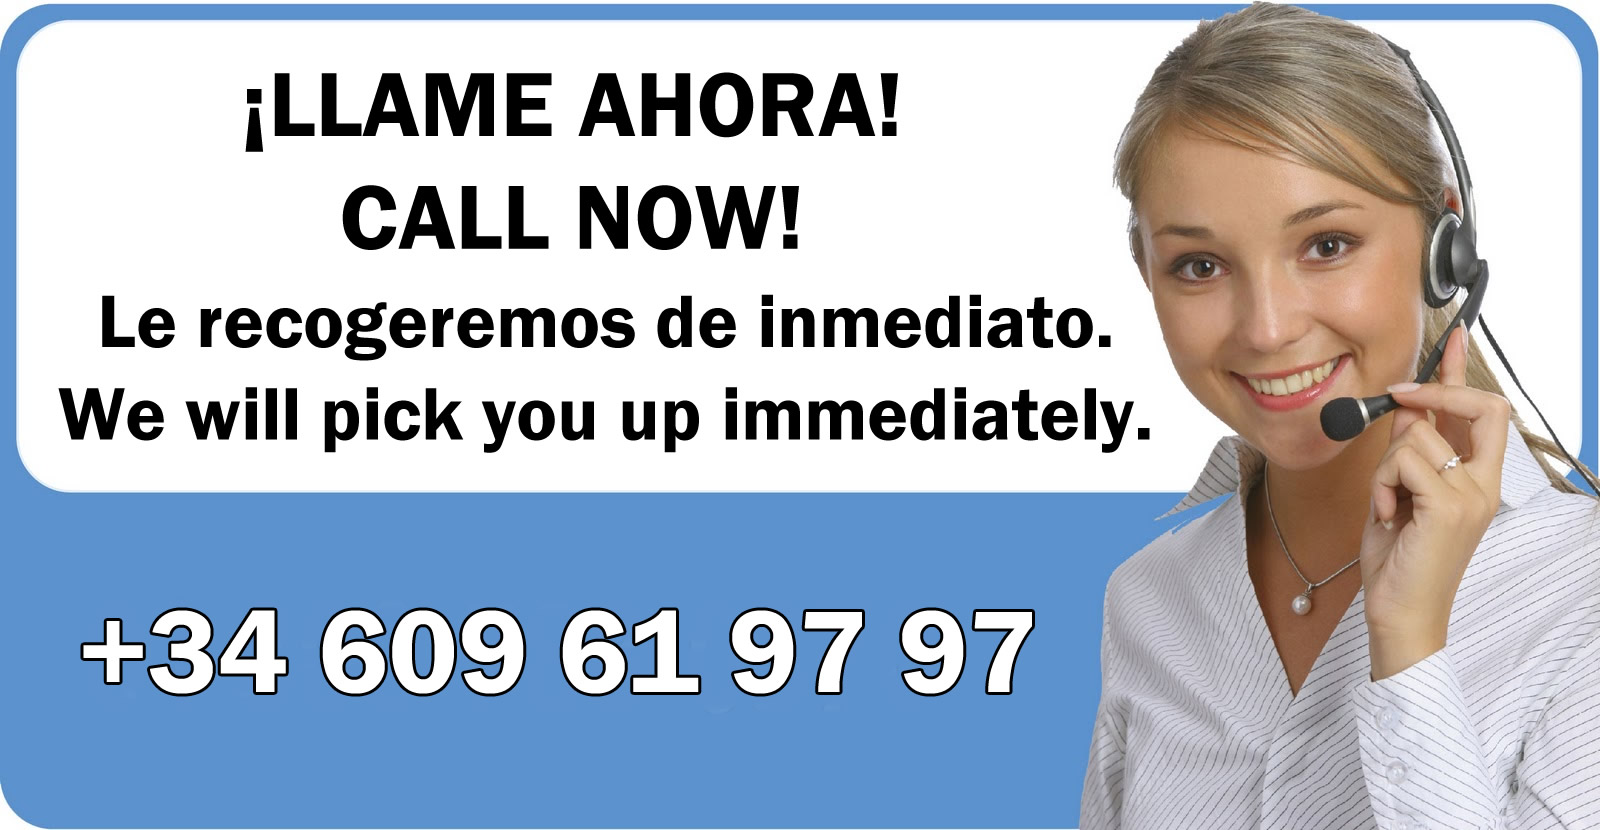 Or click to call!